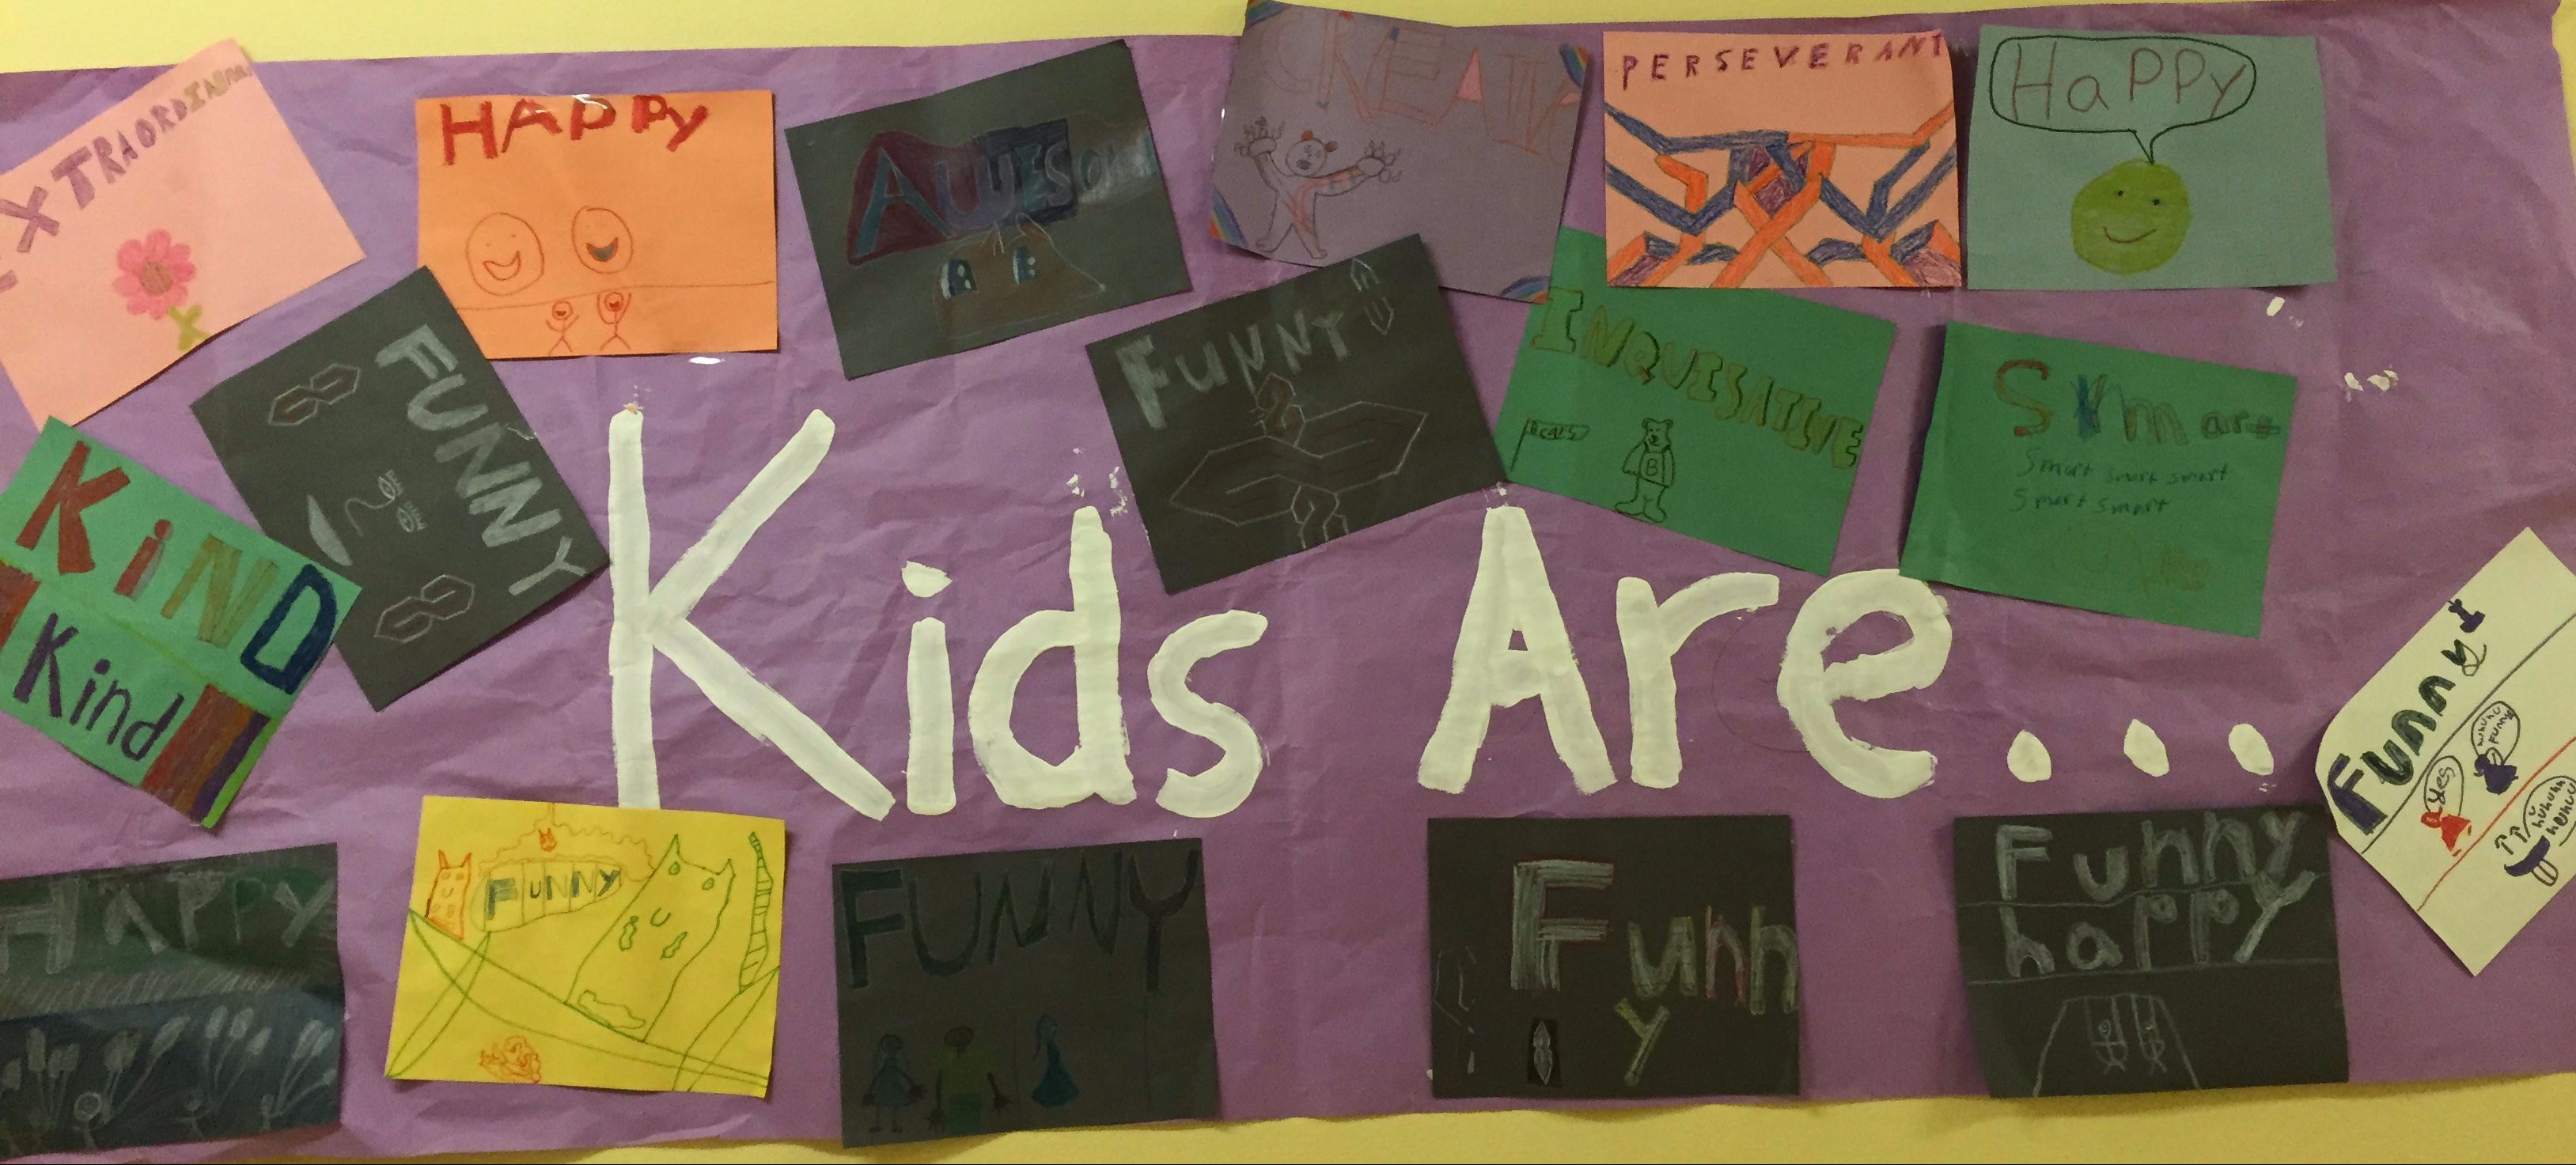 Bear Creek - Kids Are... image